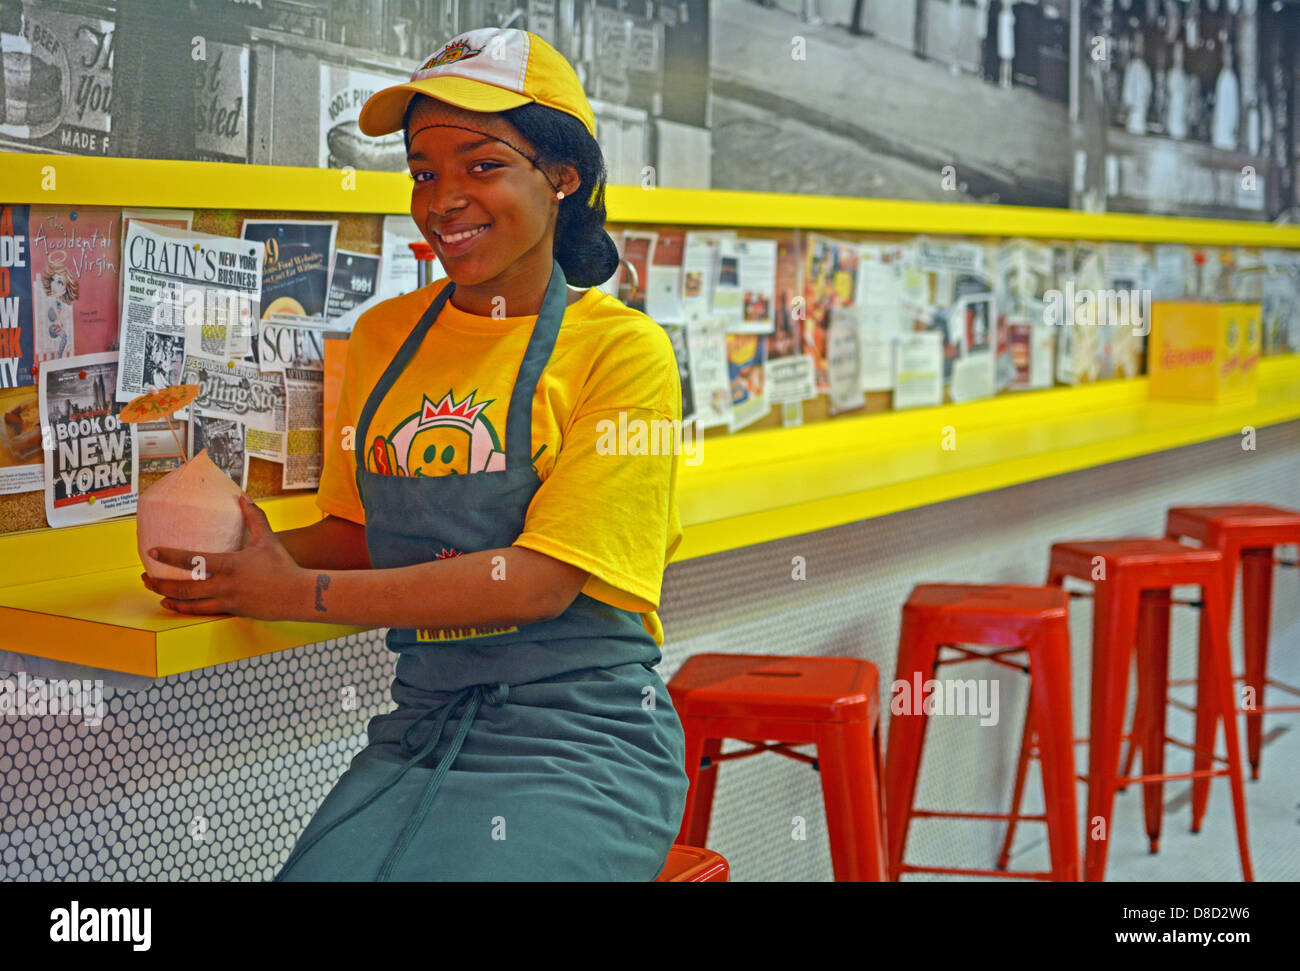 Portrait of Jade, a counter girl at Papaya King on St. Marks Place in the East Village section of New York City - Stock Image